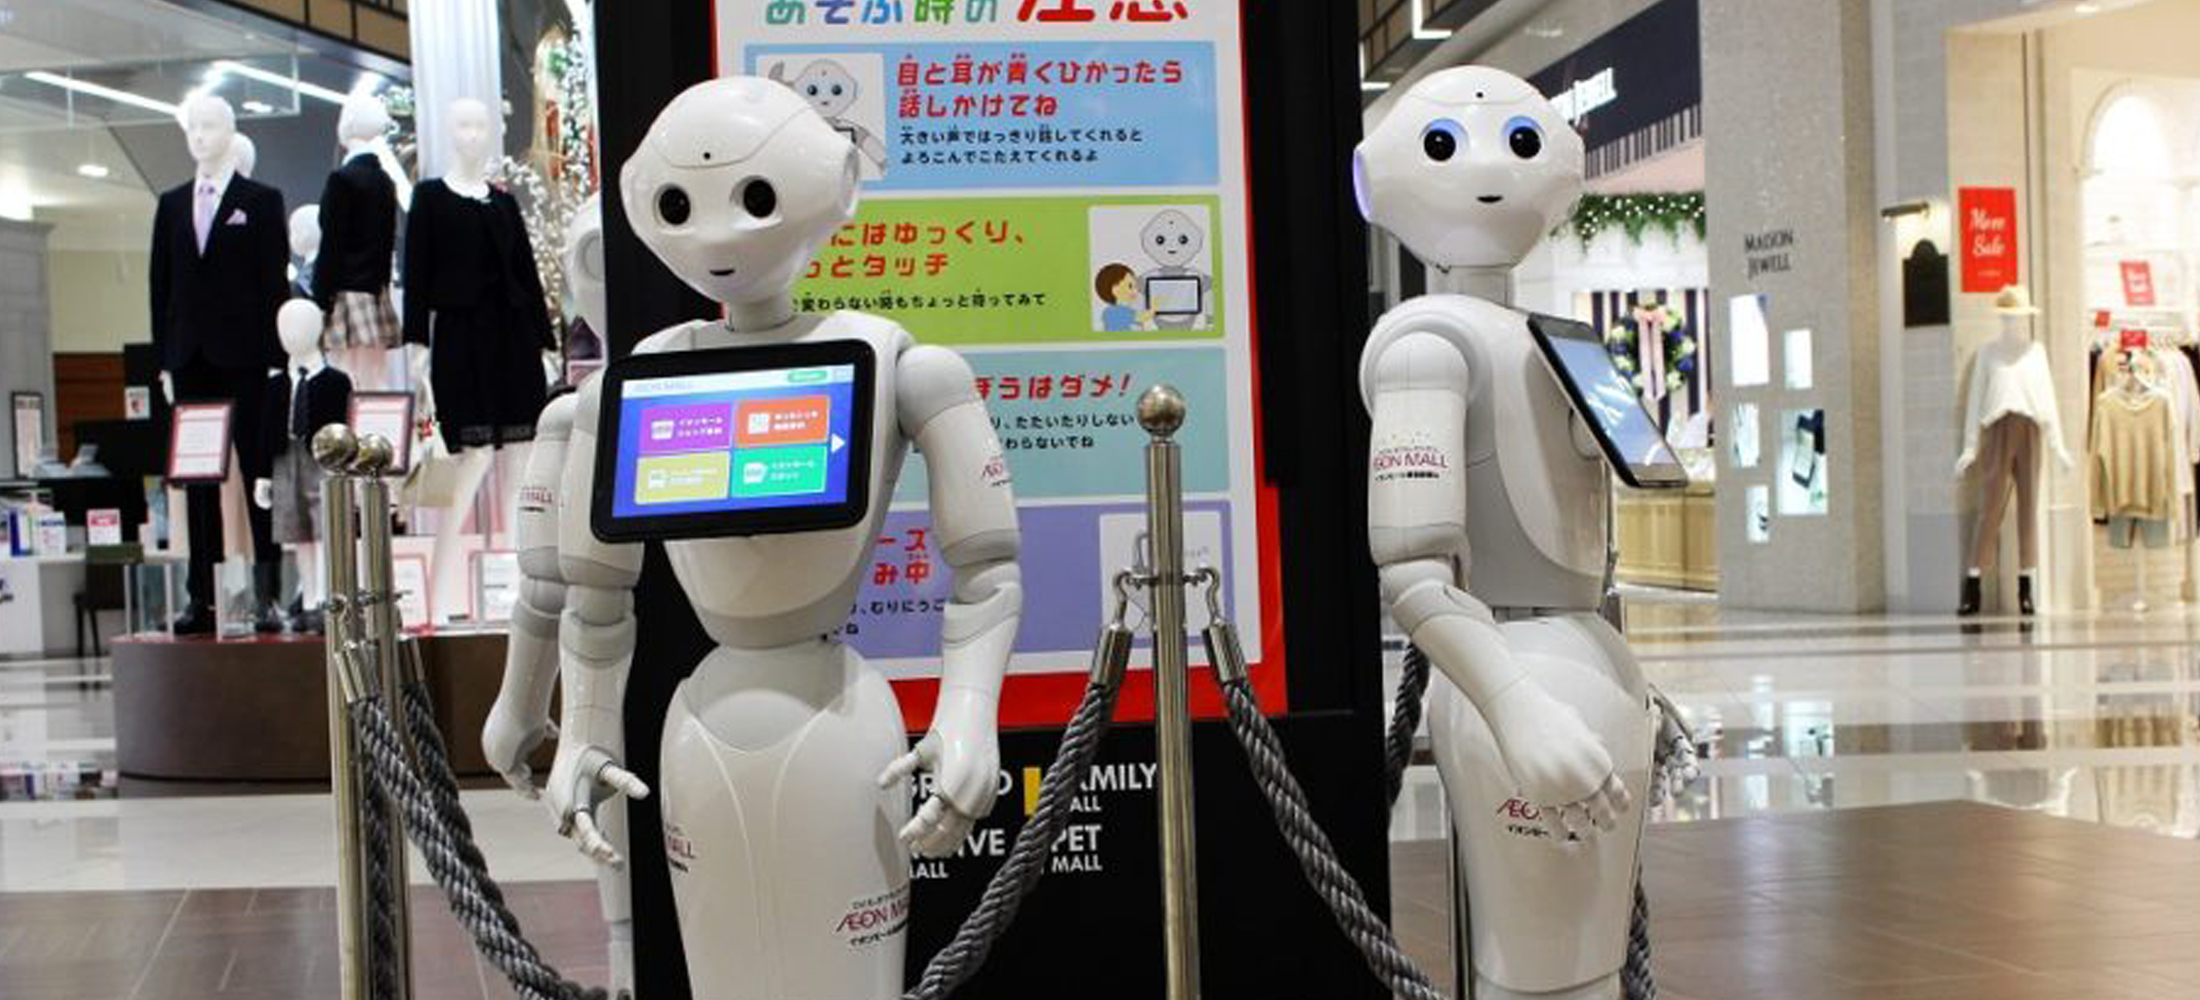 robots standing in mall